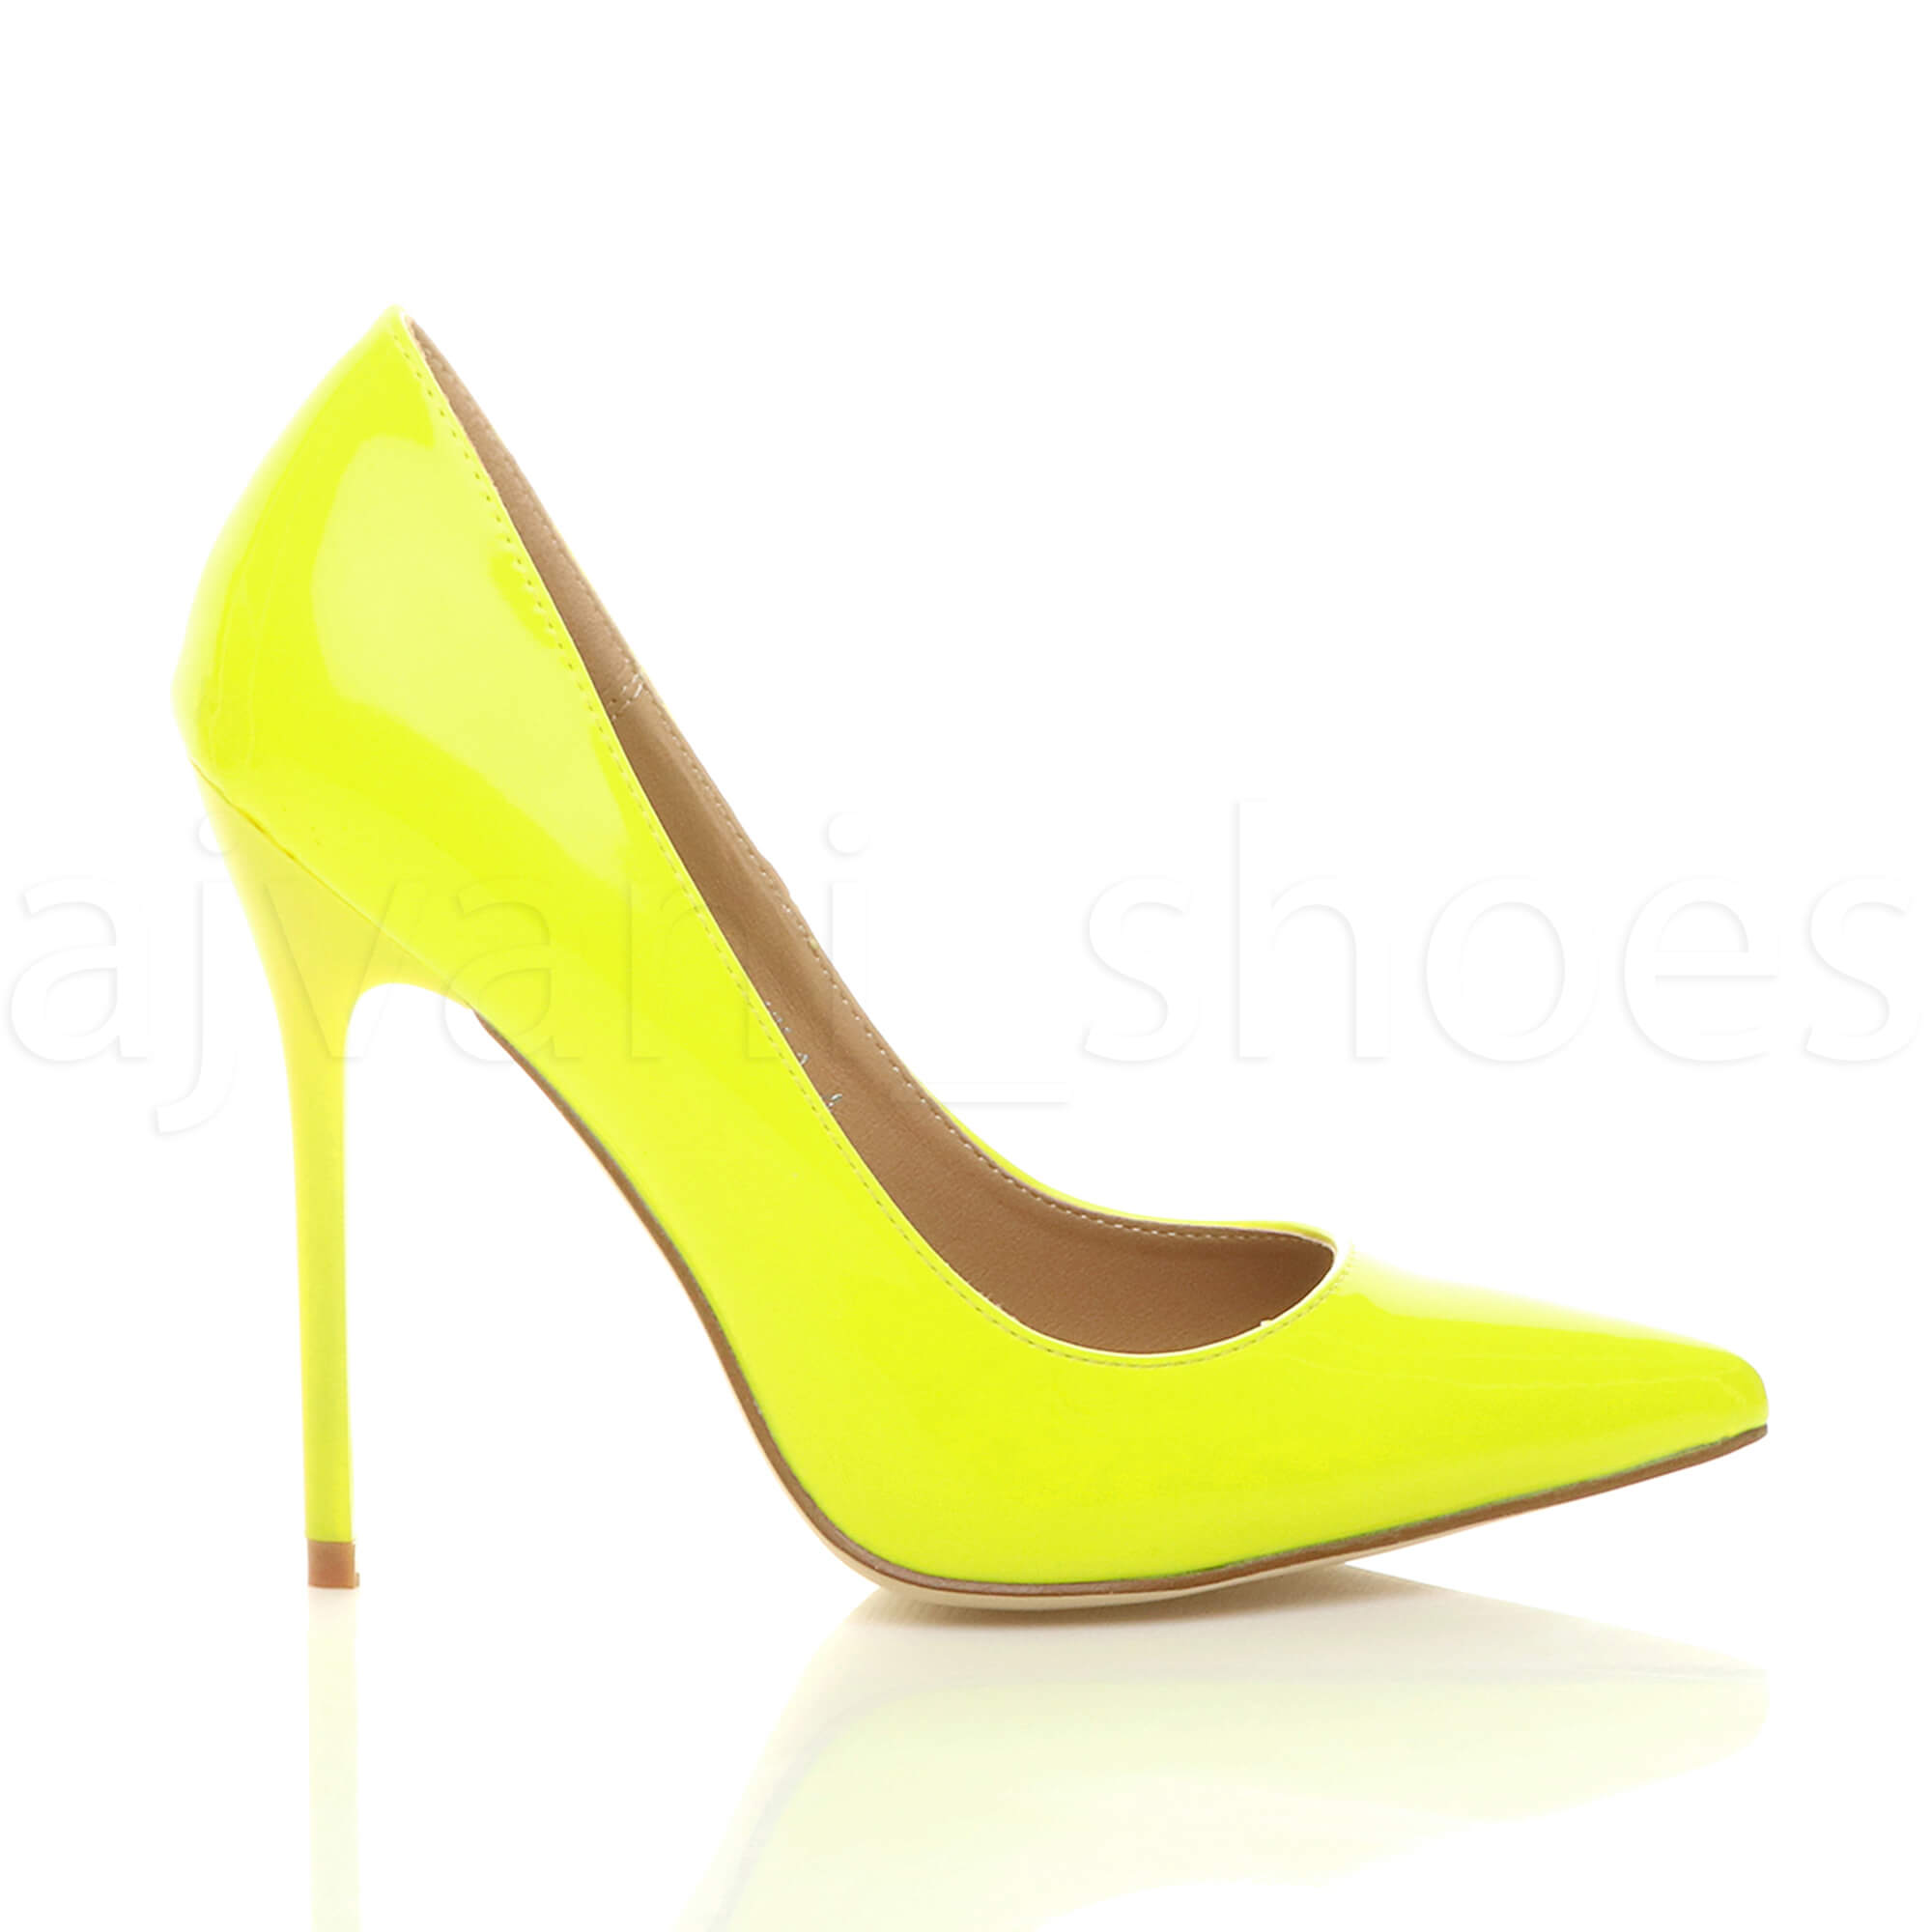 WOMENS-LADIES-HIGH-HEEL-POINTED-CONTRAST-COURT-SMART-PARTY-WORK-SHOES-PUMPS-SIZE thumbnail 129